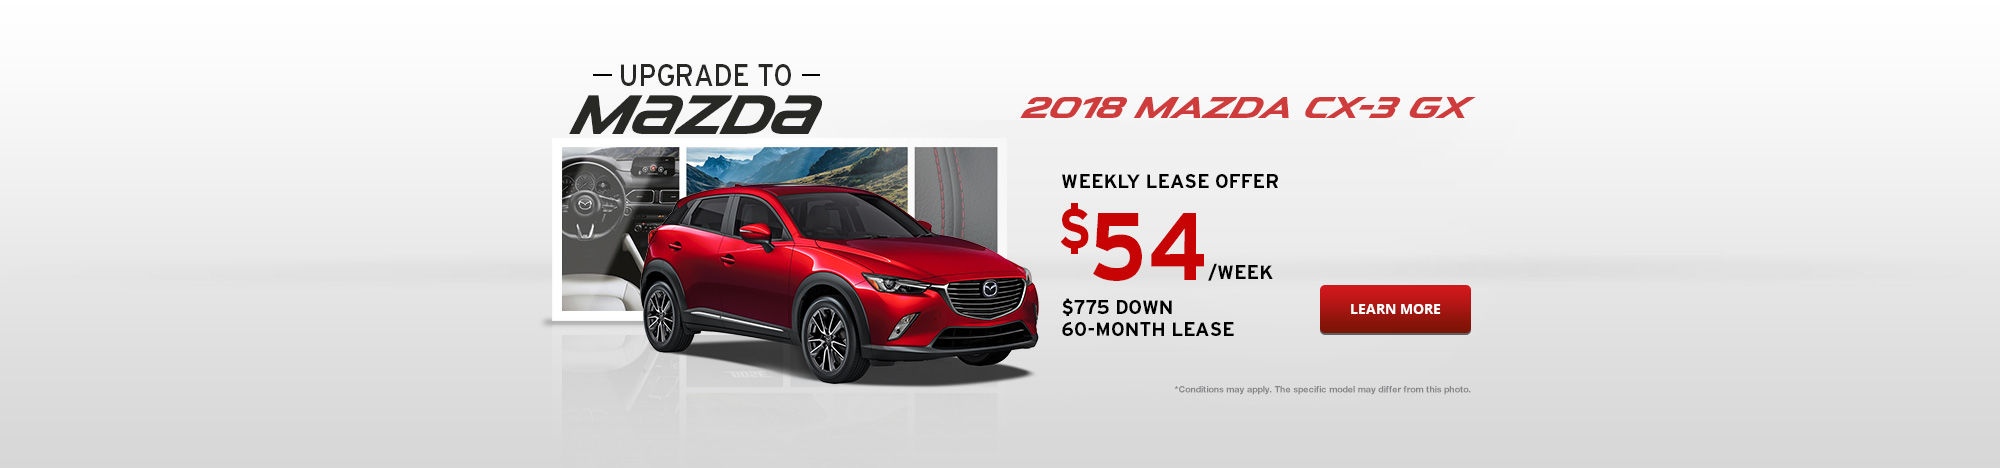 Upgrade To Mazda September - CX-3